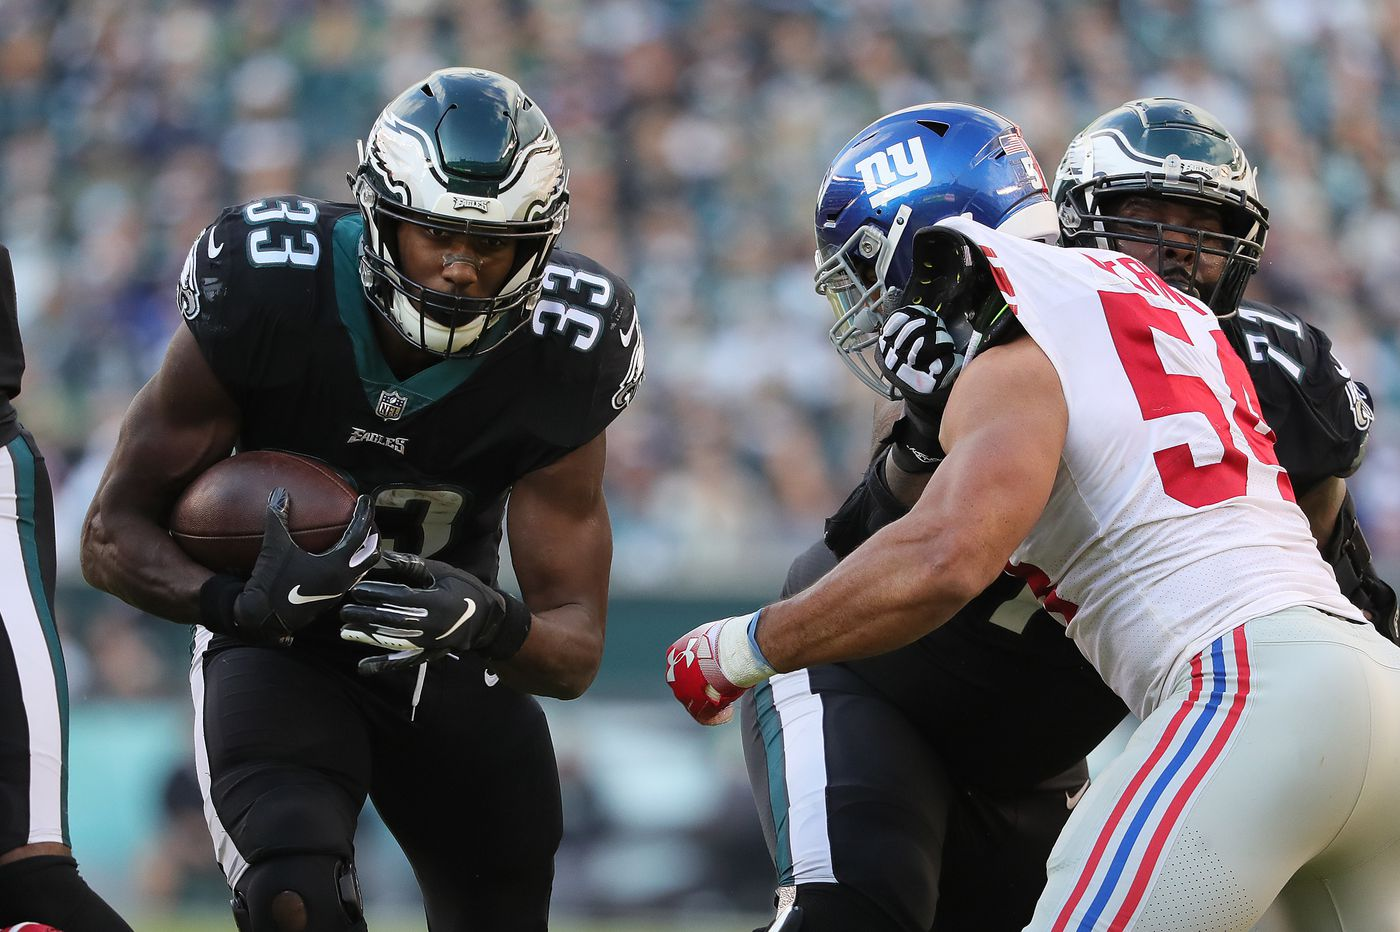 Five reasons the Eagles beat the Giants | Paul Domowitch